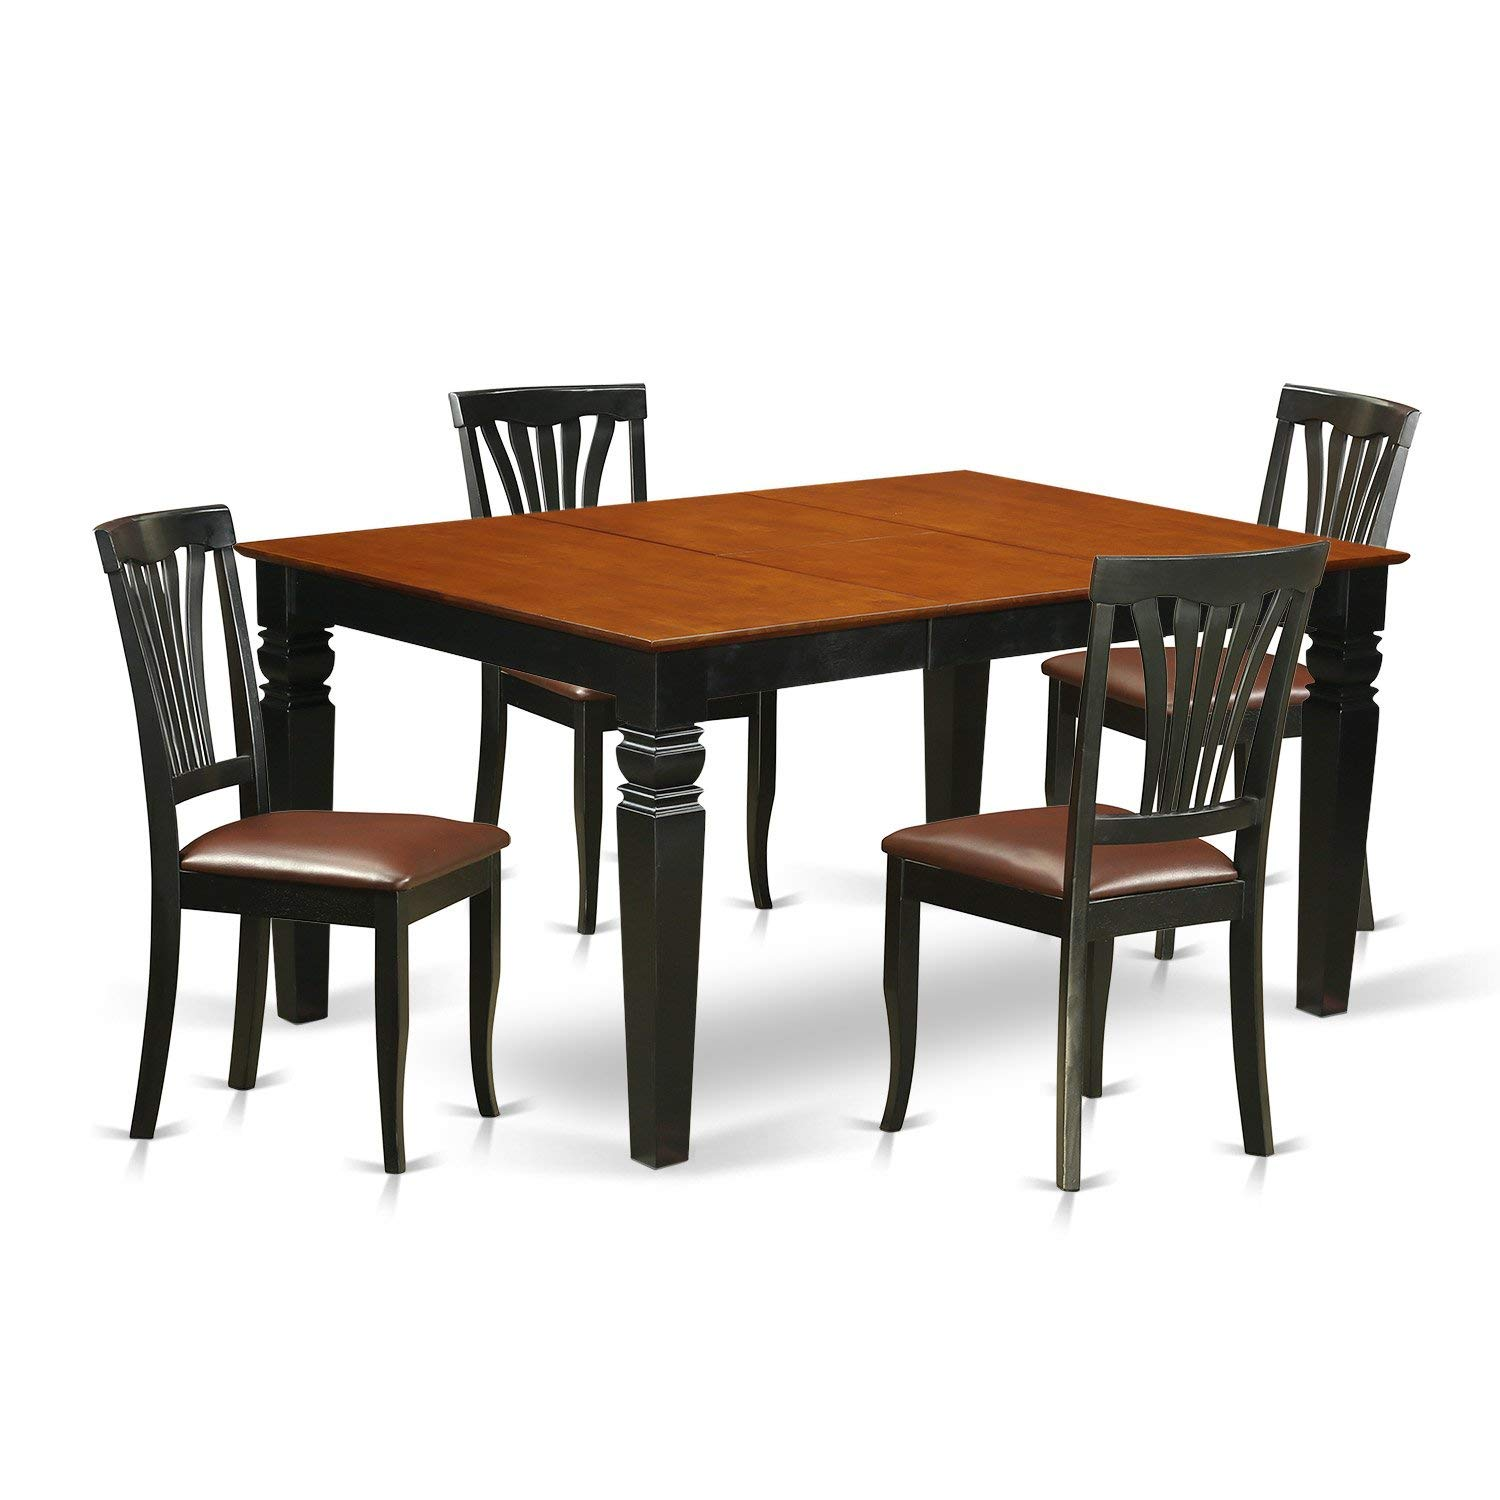 East West Furniture Weston WEAV5-BCH-LC 5 Pc Set with a Kitchen Table and 4 Leather Dining Chairs, Black